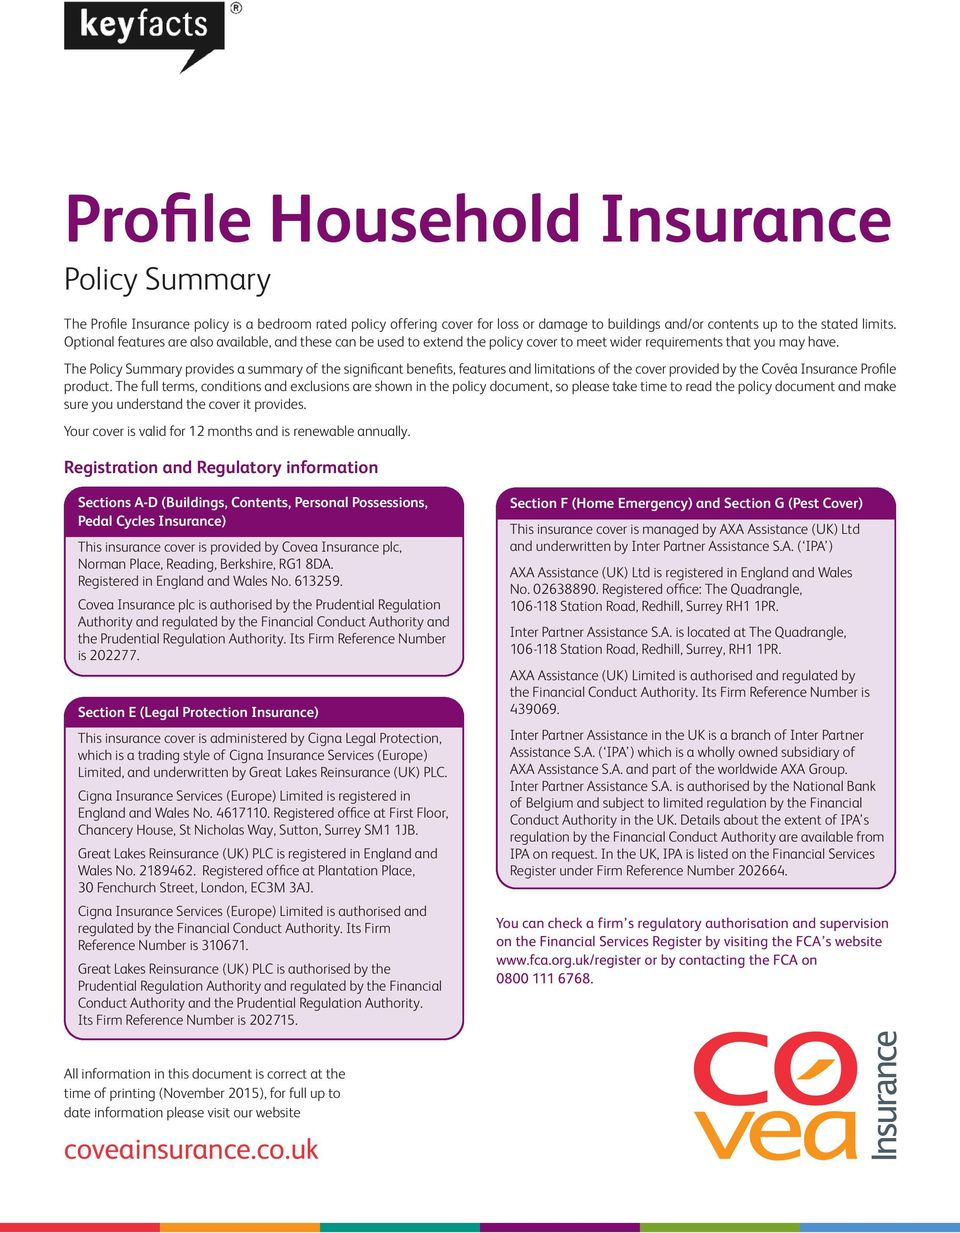 The Policy Summary provides a summary of the significant benefits, features and limitations of the cover provided by the Covéa Insurance Profile product.